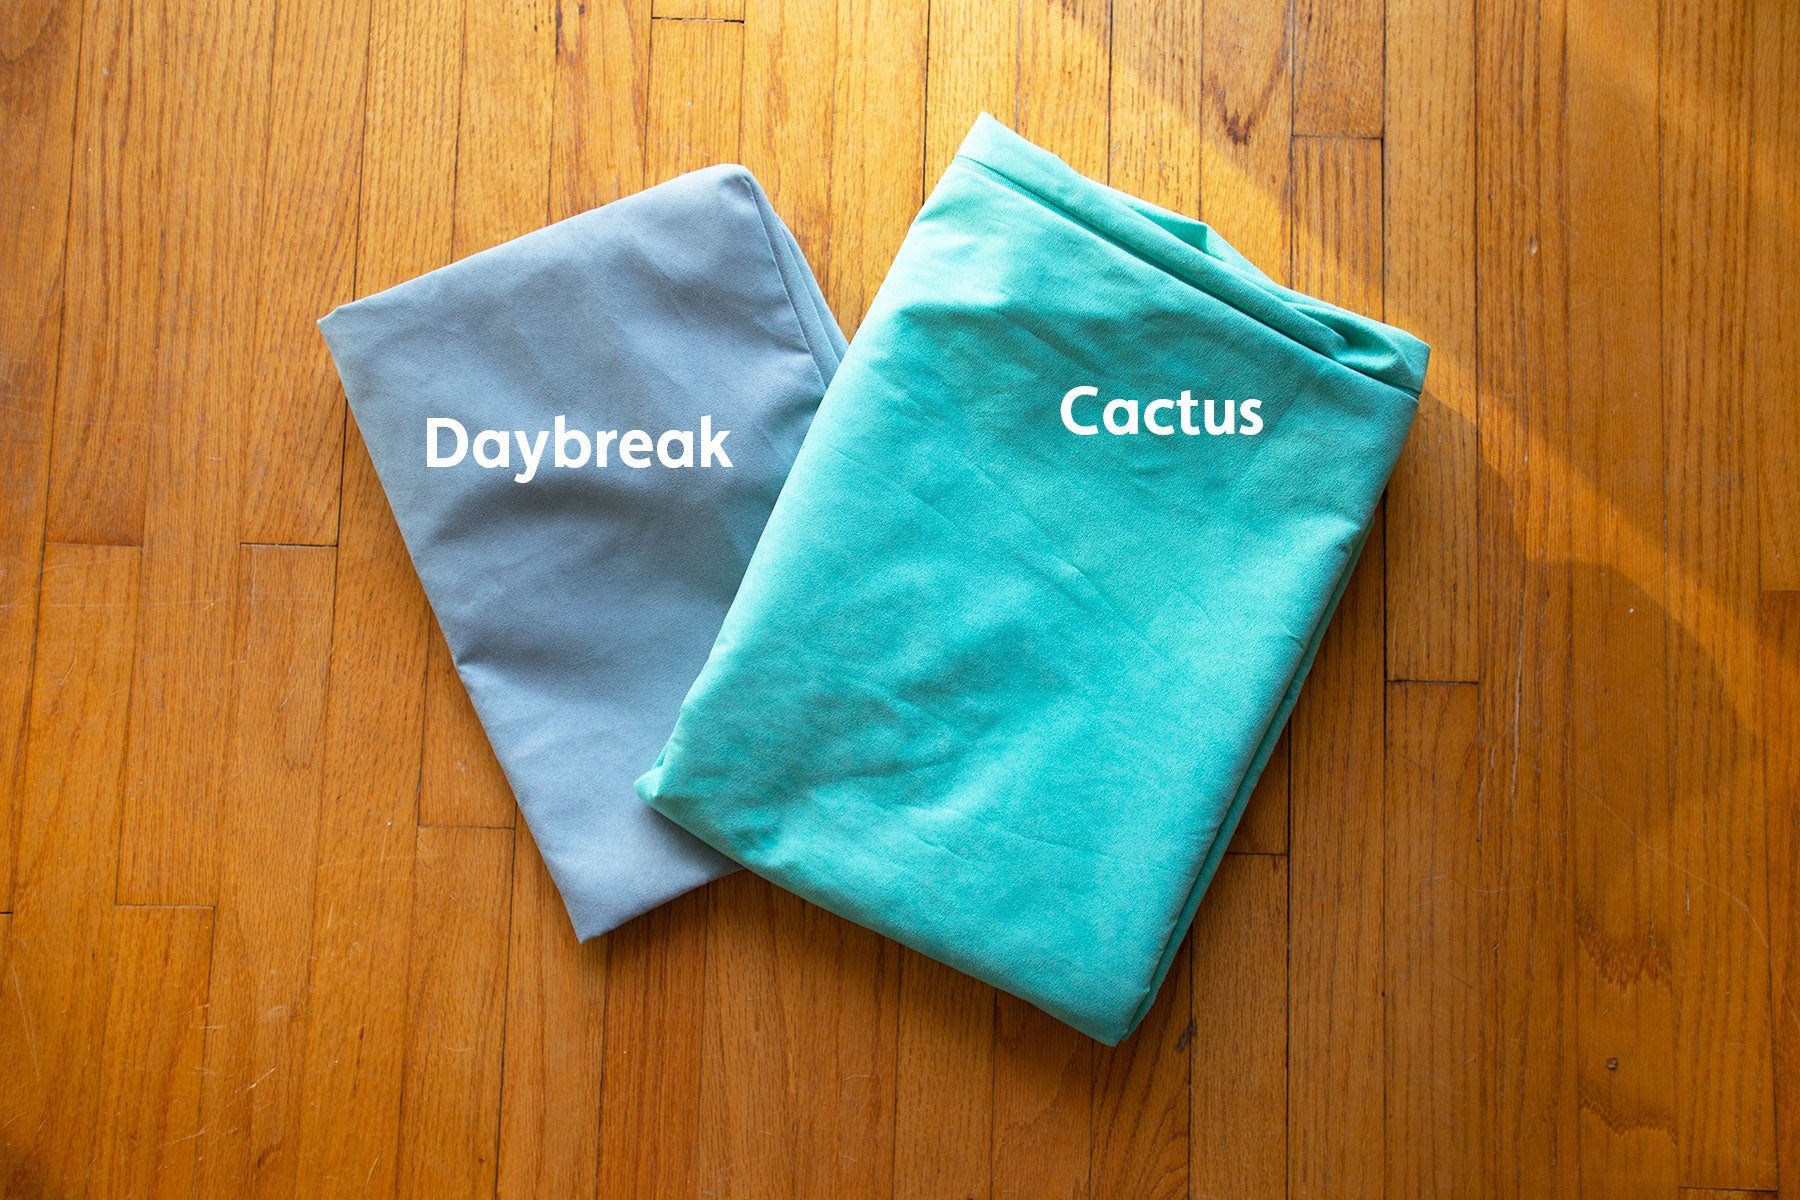 Cactus Nugget cover with Daybreak cover.